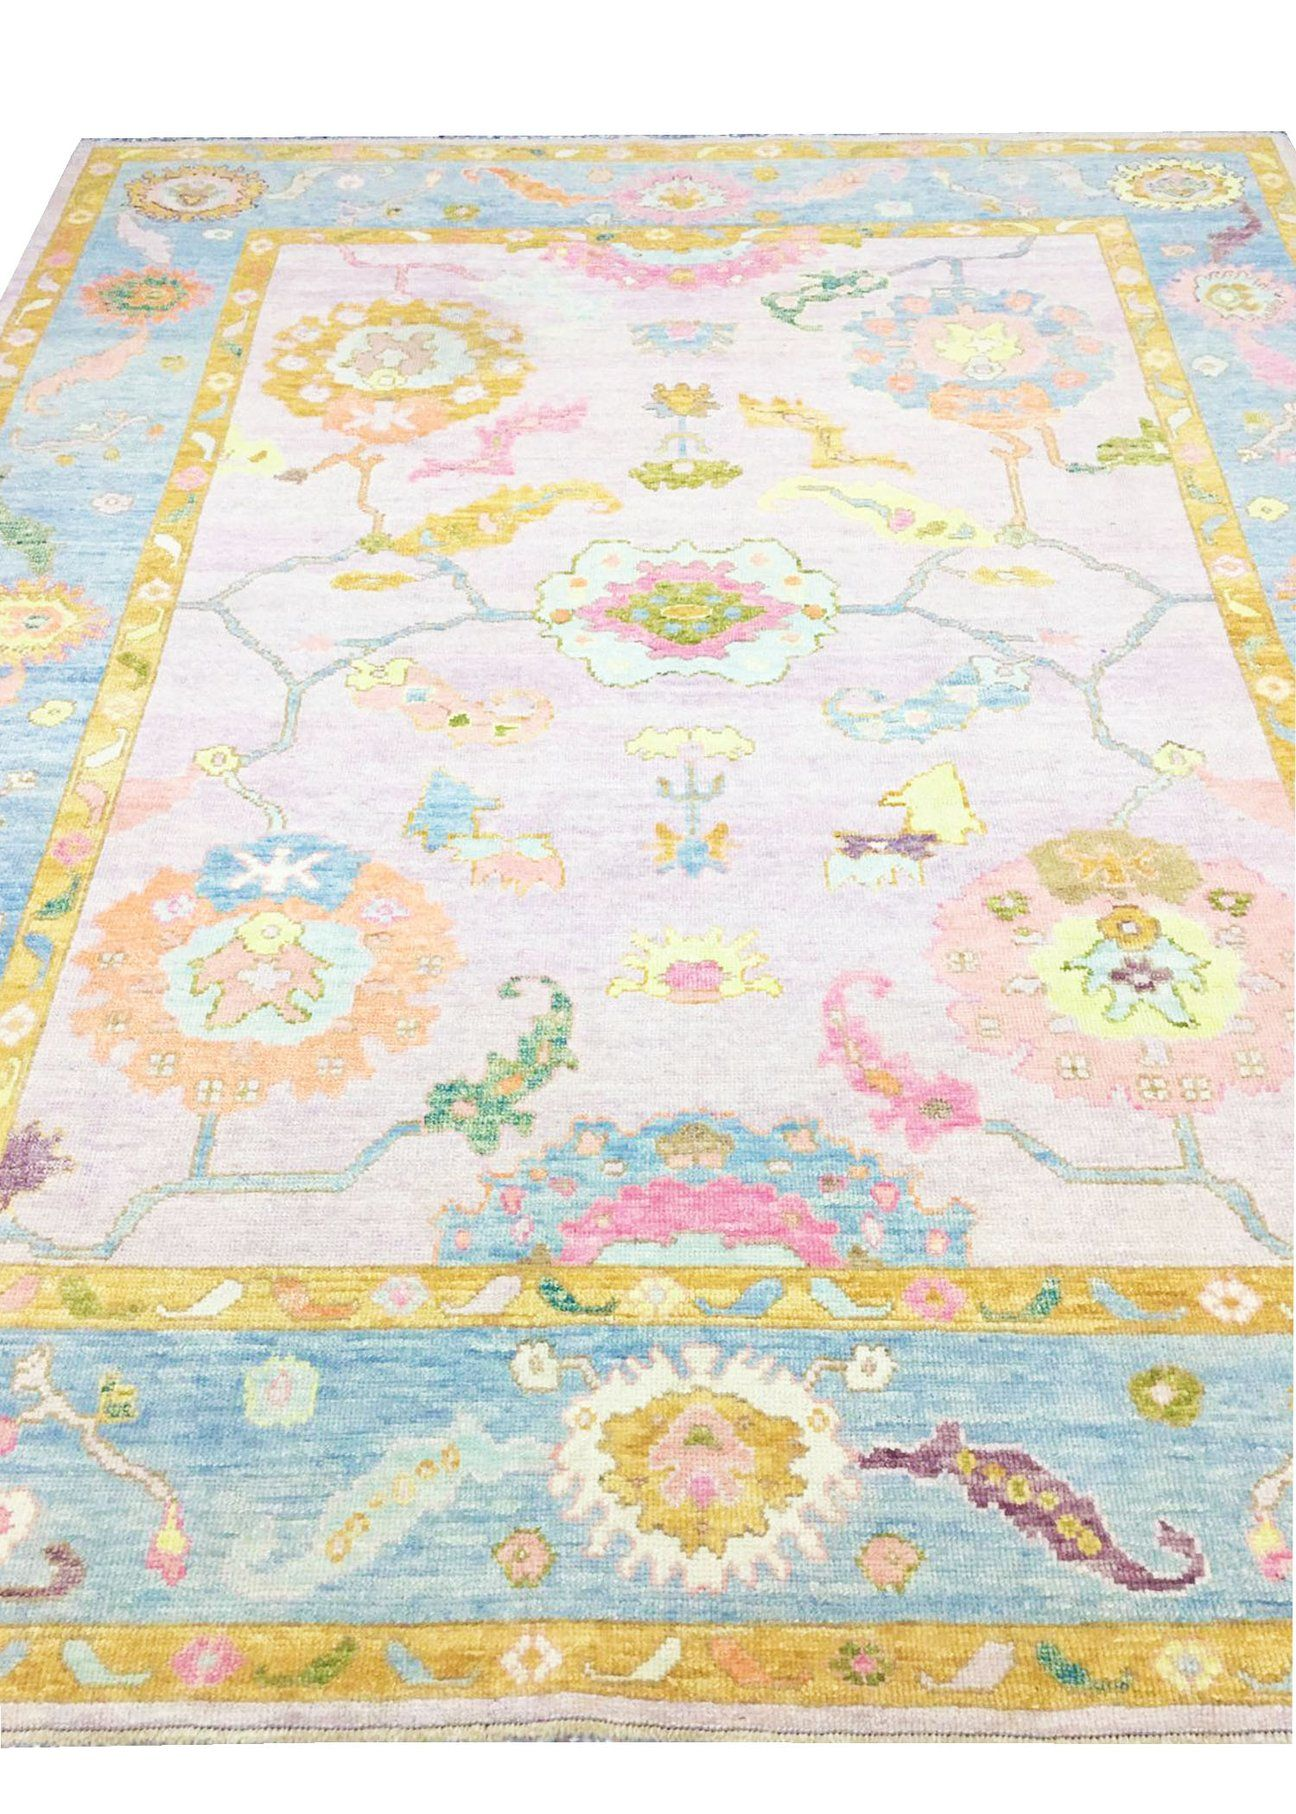 Hand Knotted Oushak Area Rug 20 Rugs Area Rugs Multicolored Rugs